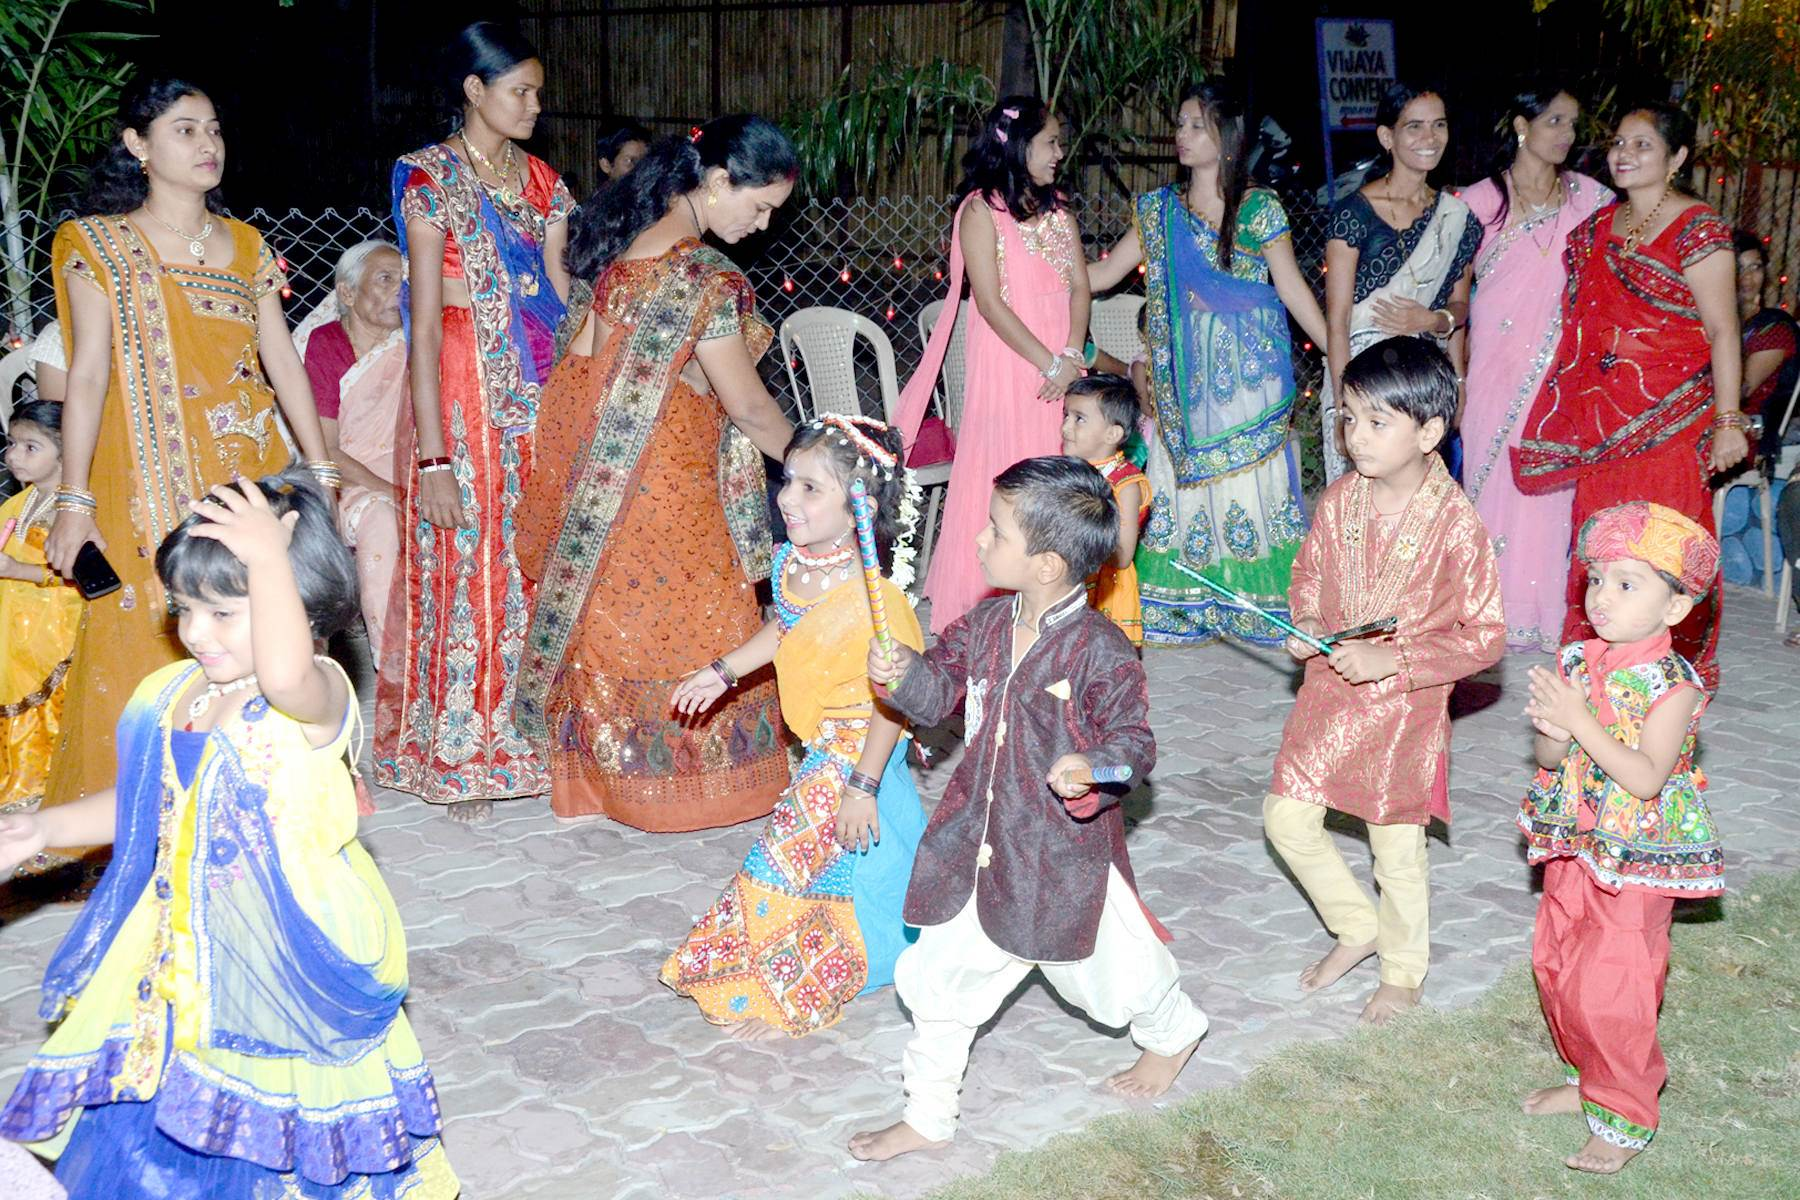 vijaya convent school dandiya celebration kids and teachers in the campus ground